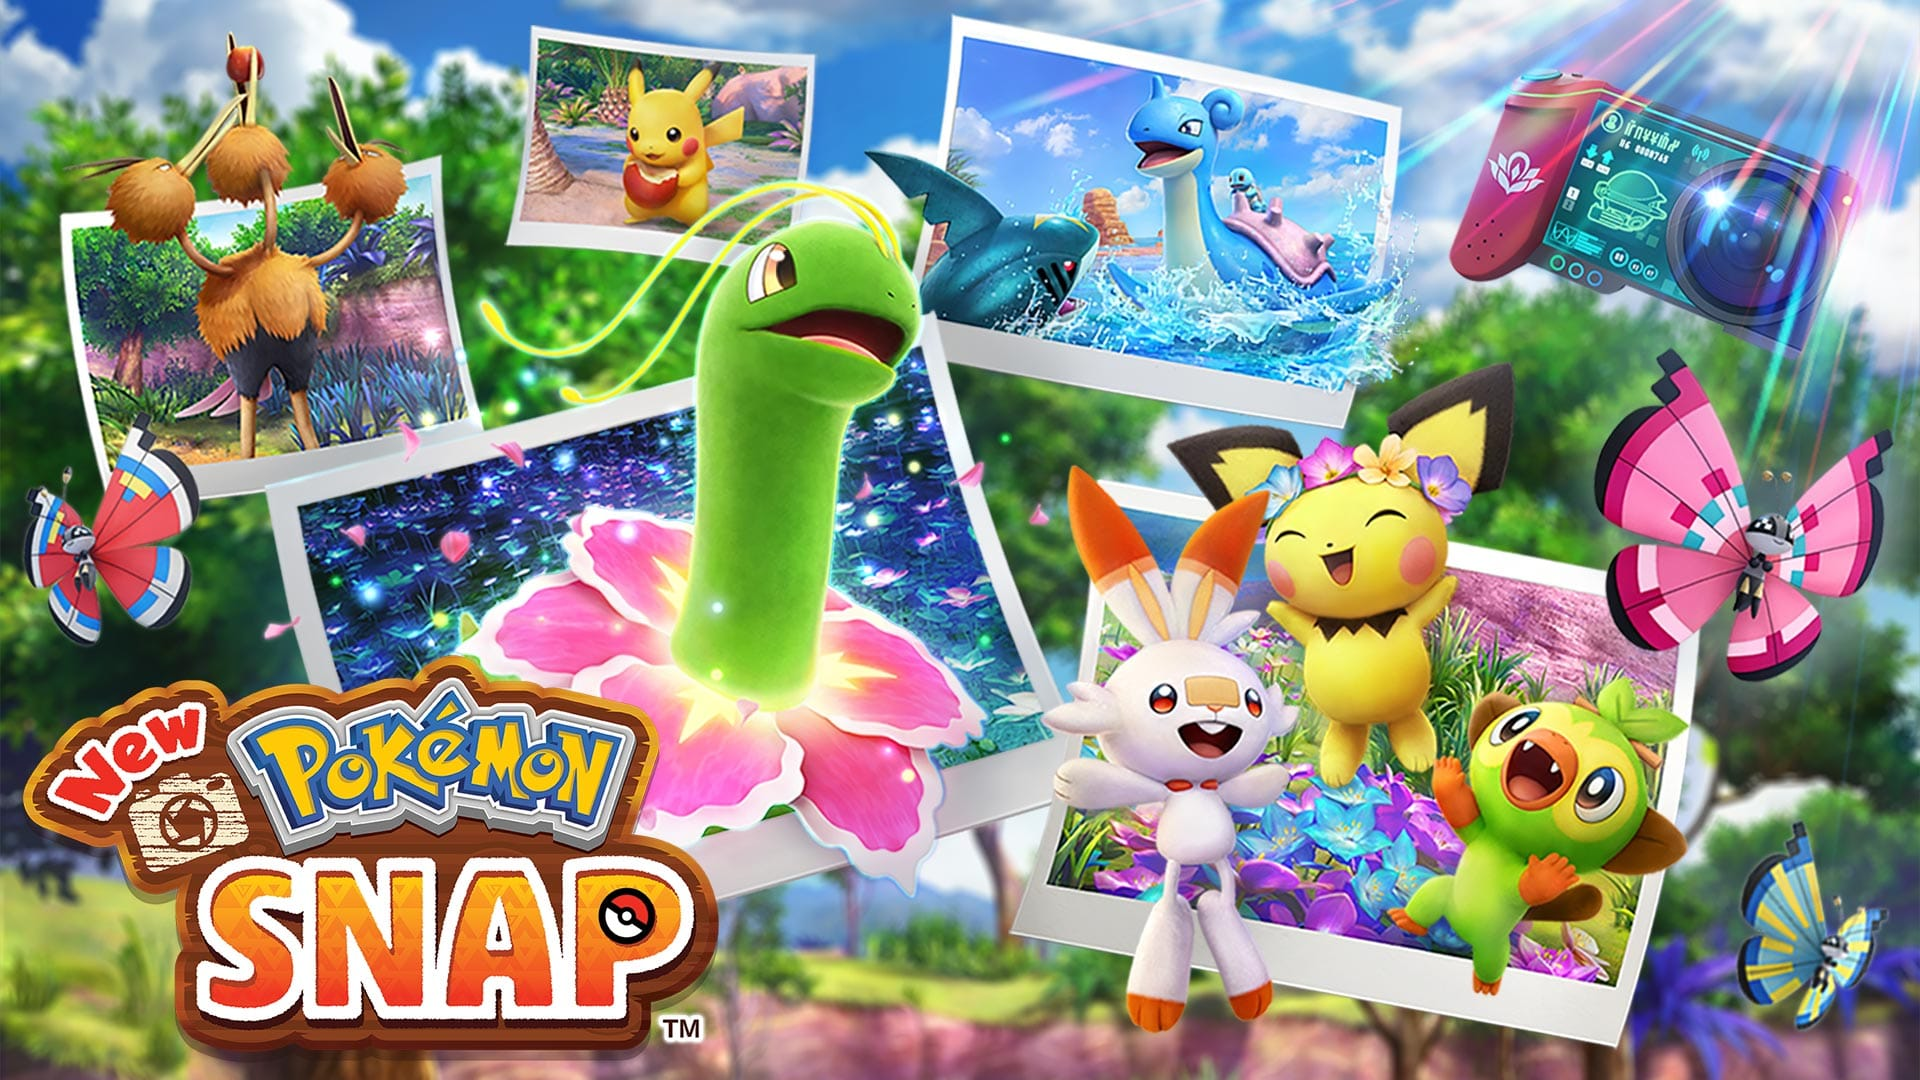 how long does it take to beat new Pokémon snap